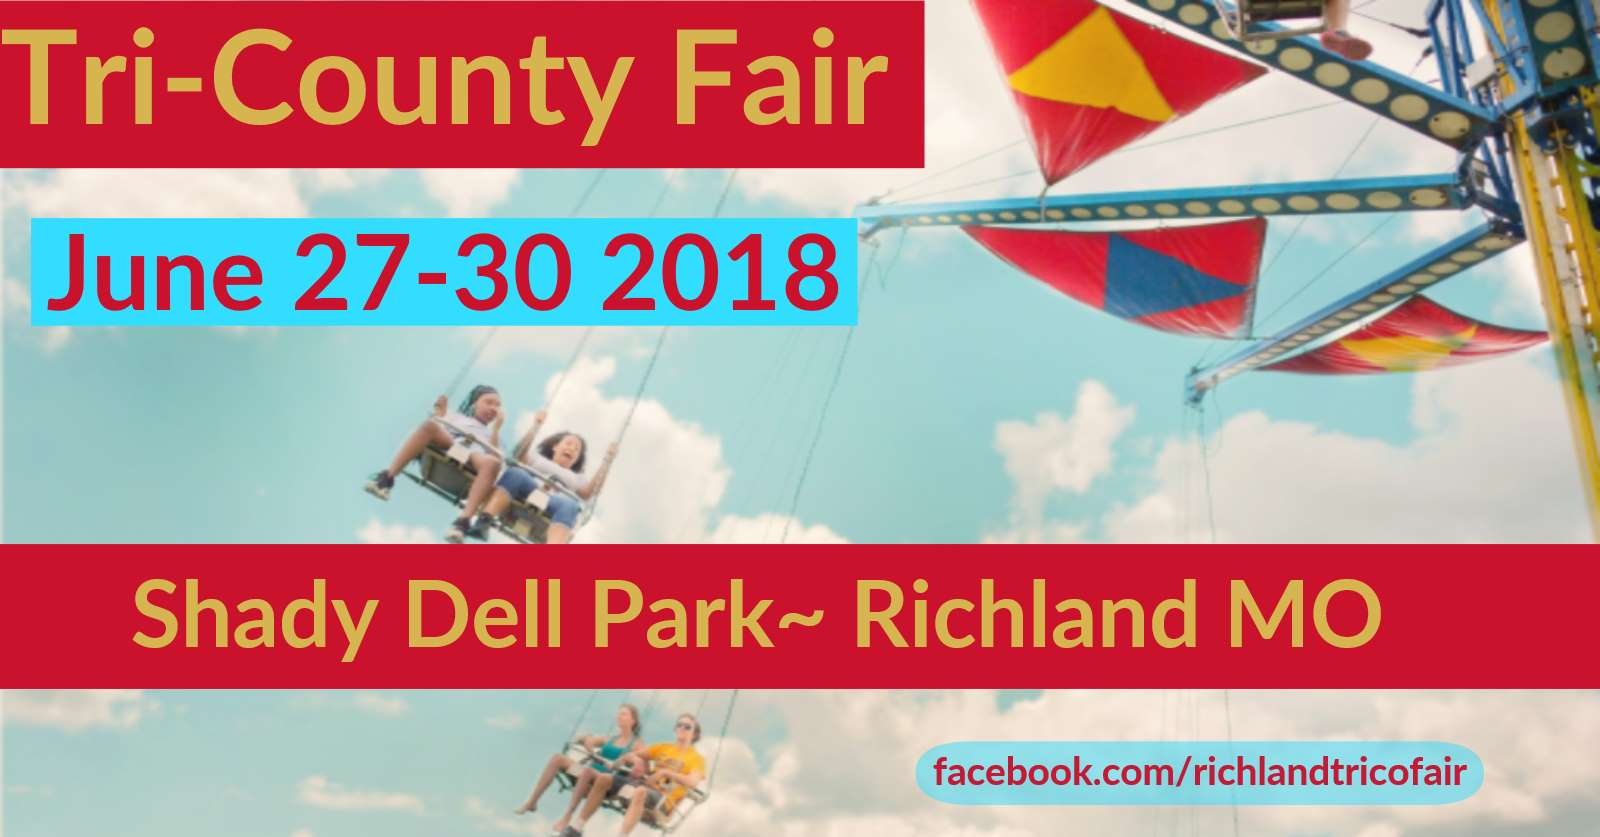 June 27 30 Tri-County Fair